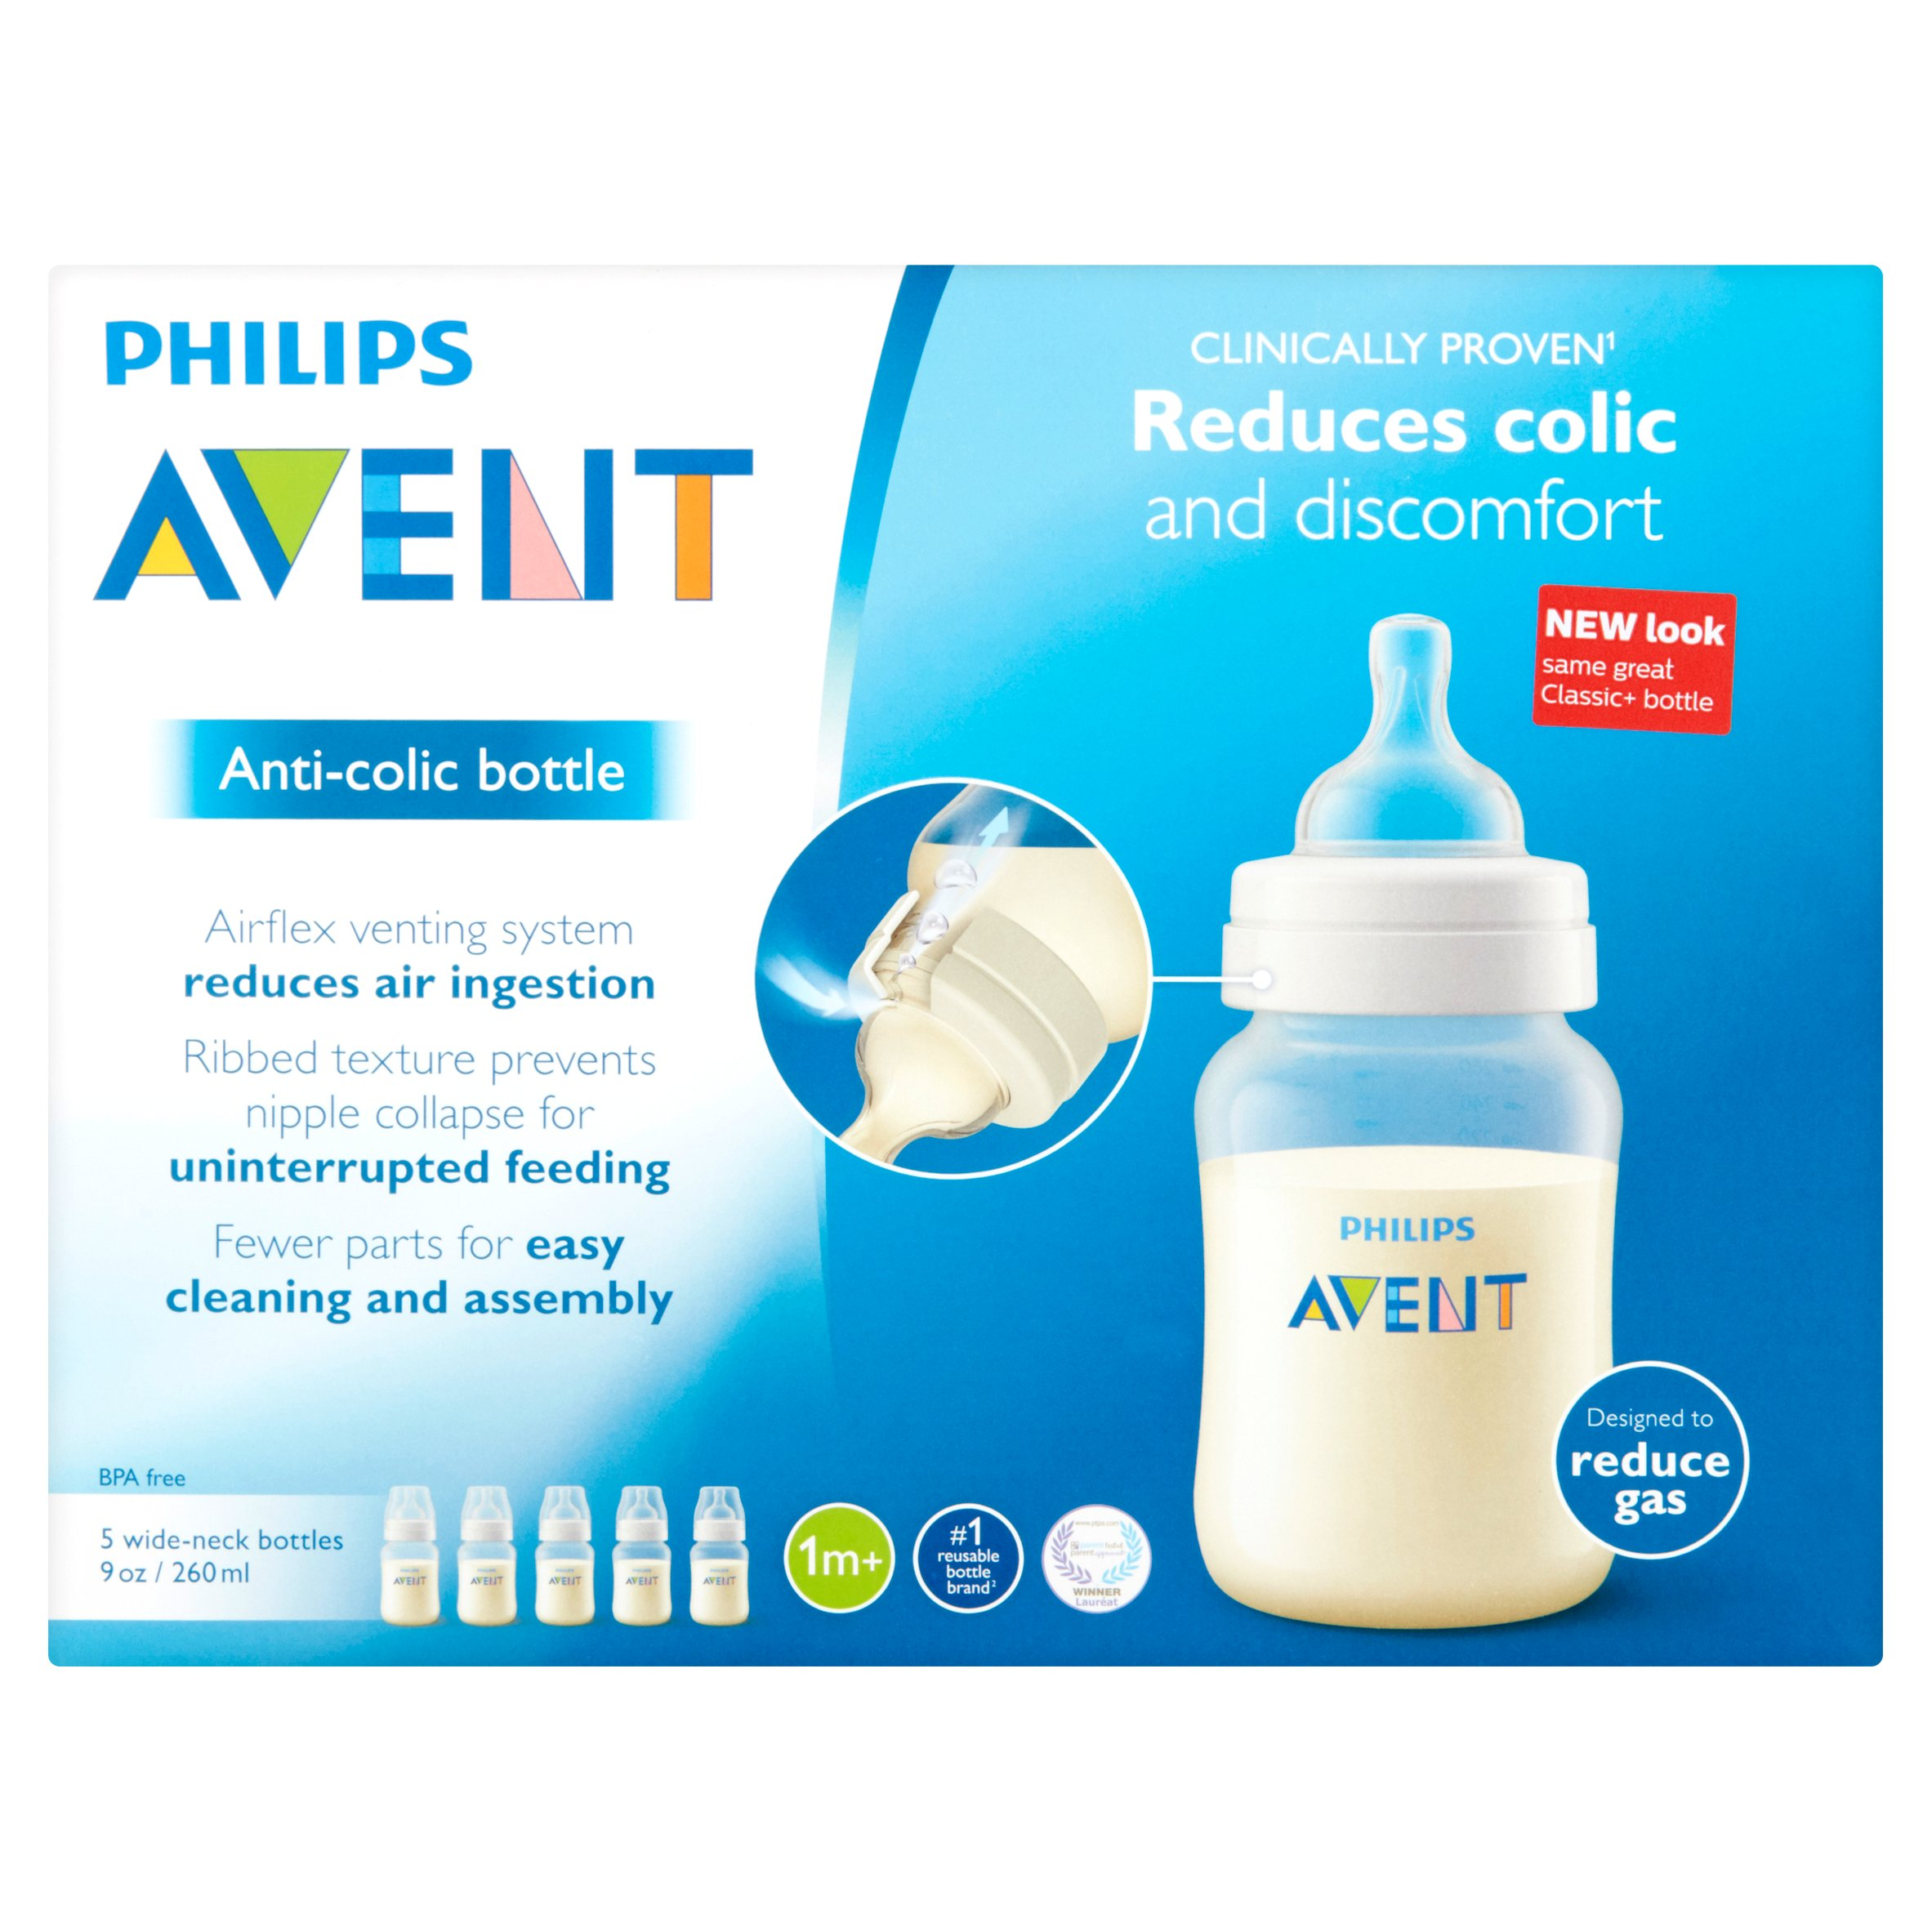 Philips Consumer Lifestyle, a Division of Philips Electronics North America Corporation Philips Avent 9 oz Anti - Colic Bottle Wide - Neck Bottles 1m+, 5 count